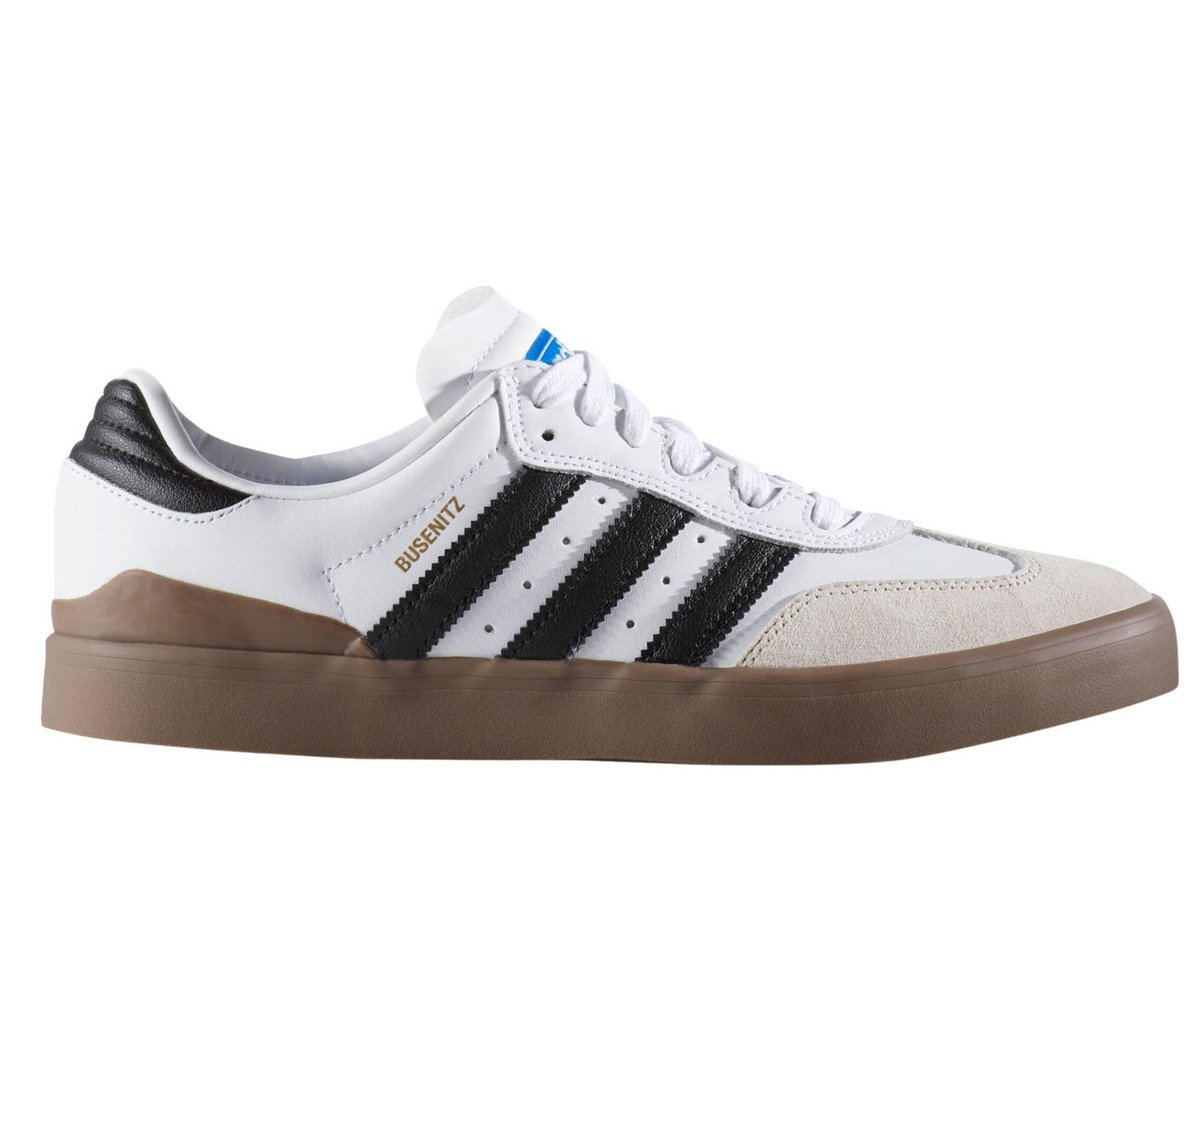 b95008fc12ace buty adidas skateboarding busenitz vulc samba edition | Shoes \ Adidas  Skateboarding Brands \ Adidas Originals SALE \ Sale - 40% \ Shoes Buty \  Adidas ...